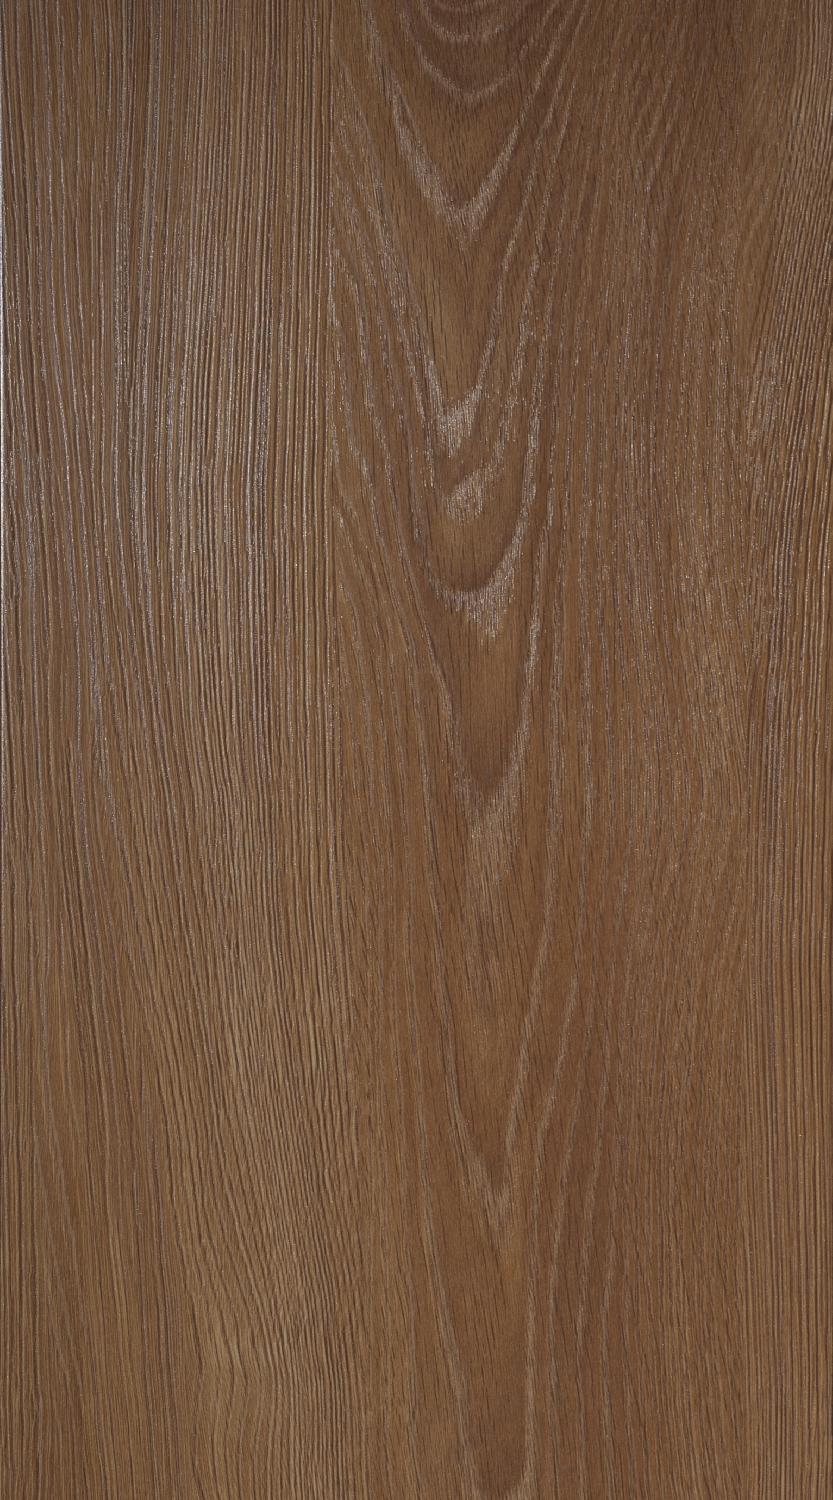 Фото Ламинат Interi Step OAK Floor B714(1217х302х12,3мм) /2,205/92.61 м2 34 кл